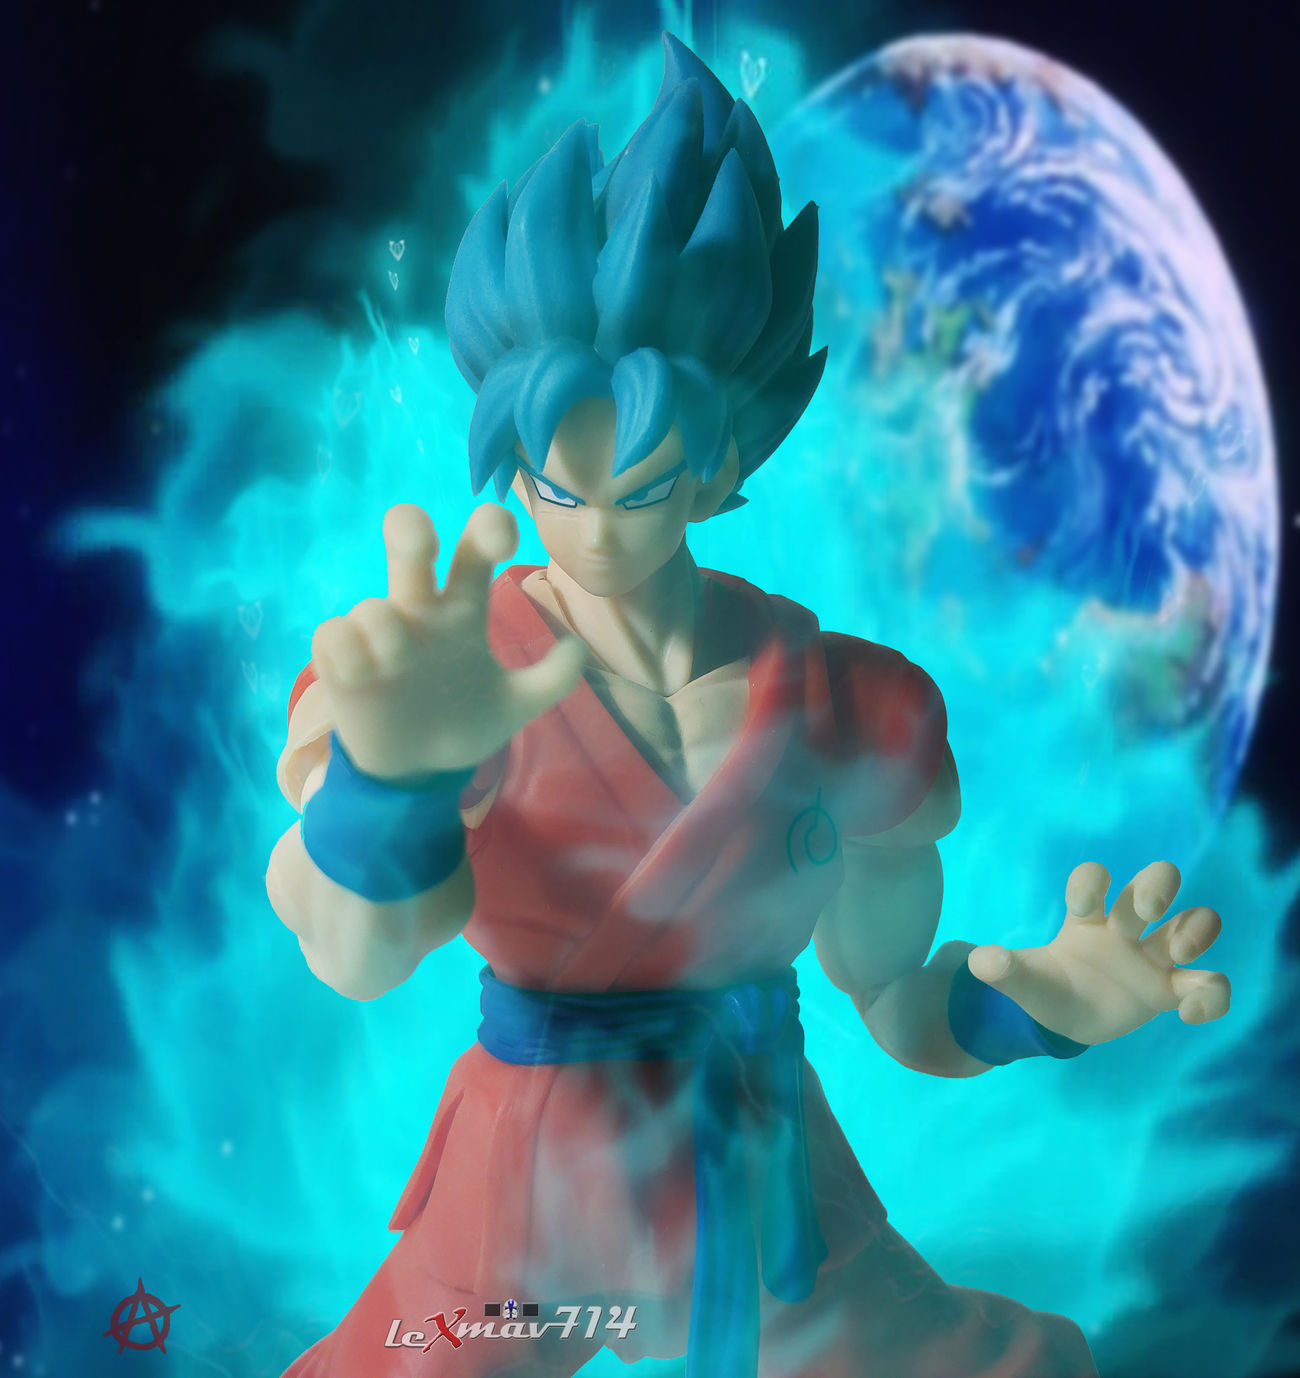 Ascending yet again to a new form of power. A power surpassing a god. Toyphotography Anarchyalliance Toygroup_alliance Toycommunity Toycrewbuddies Shfiguartsphotography DBZ Ssgssgoku